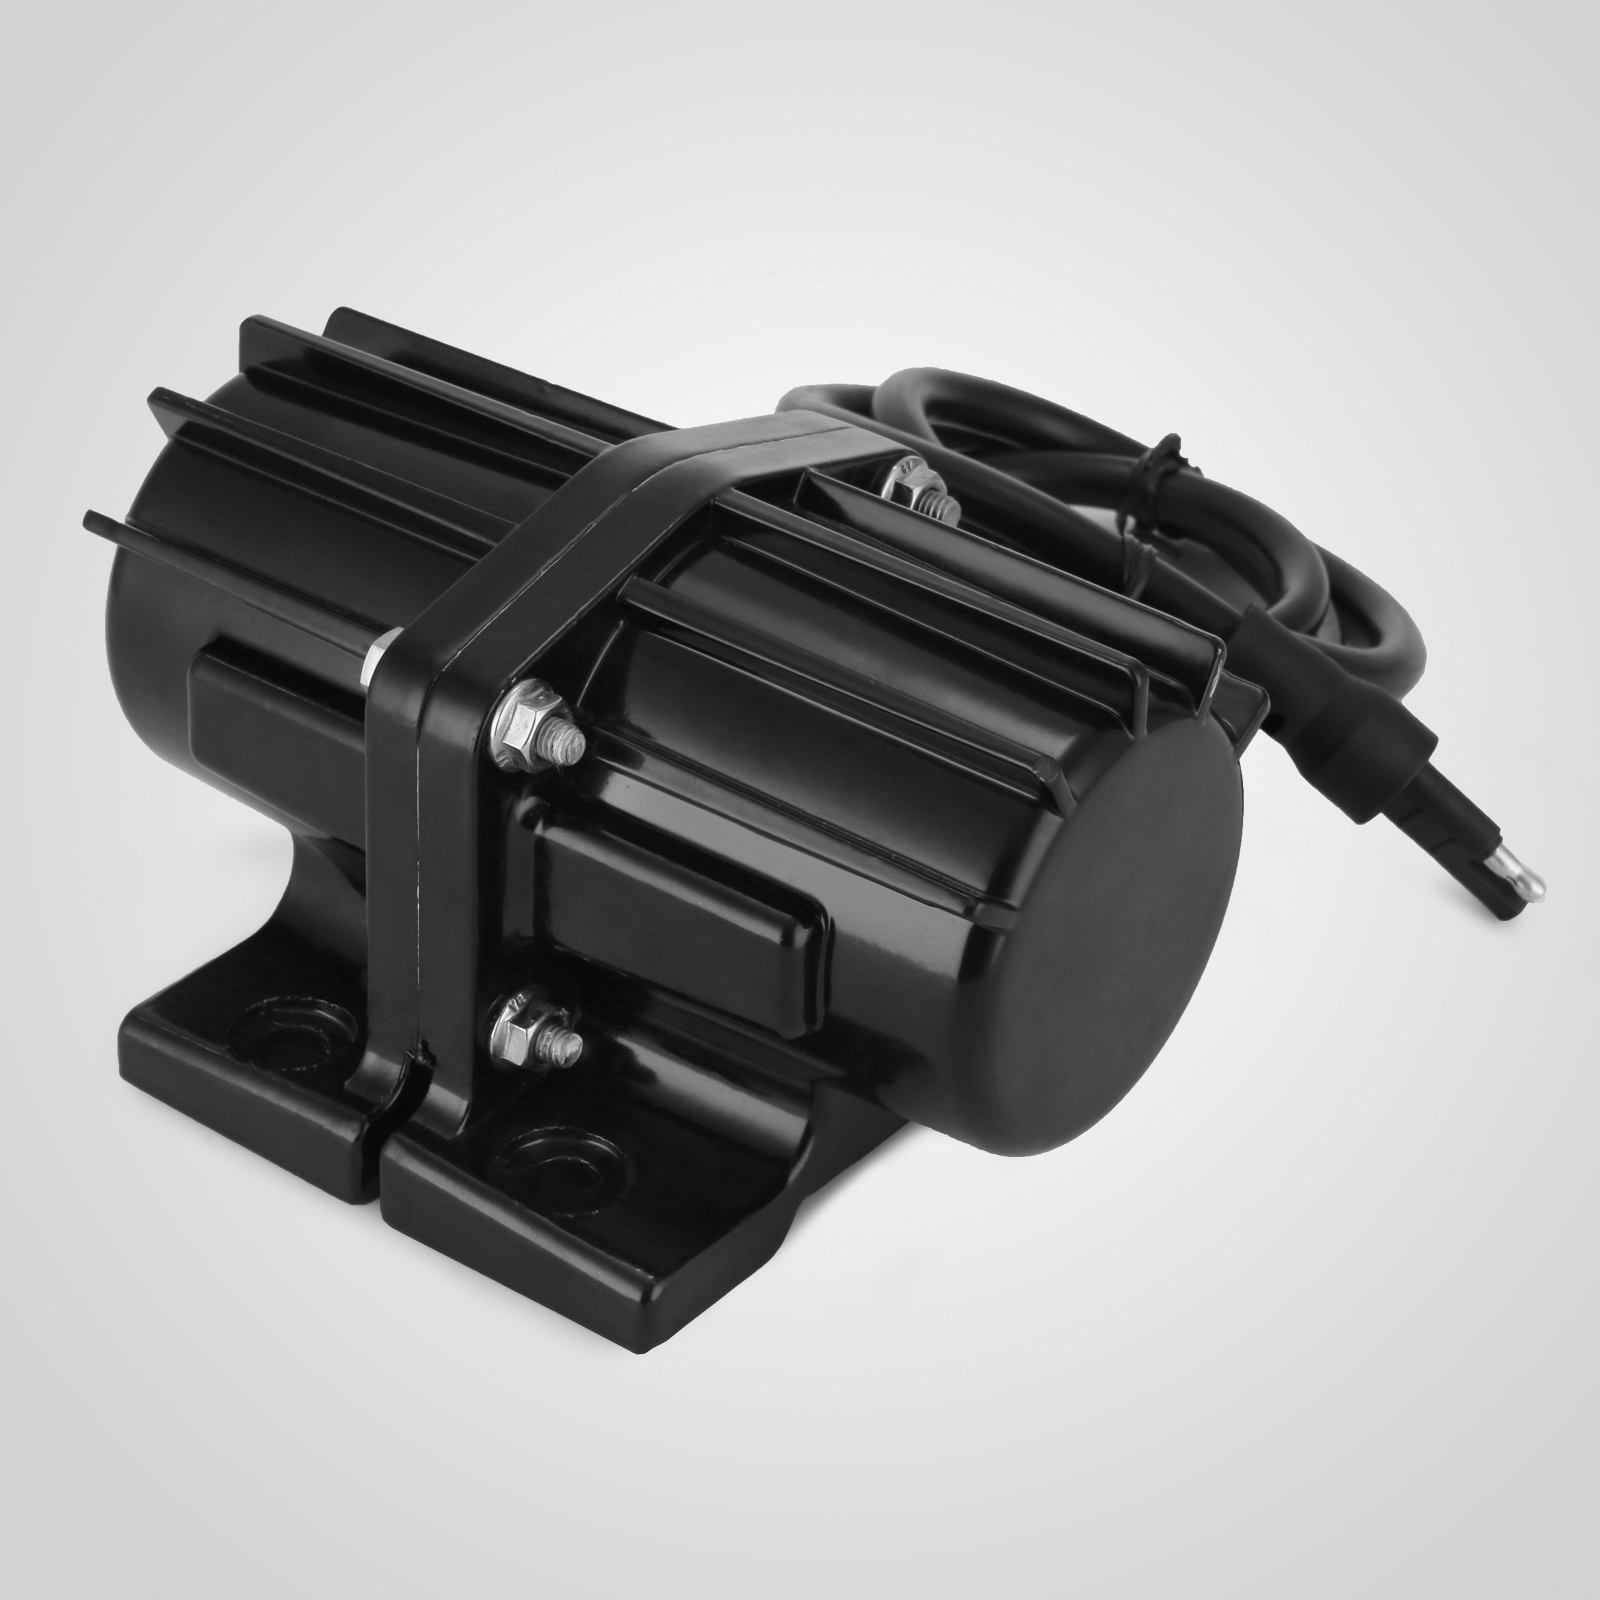 Salt Spreader Replacement Parts Motor Repalcement Parts And Diagram